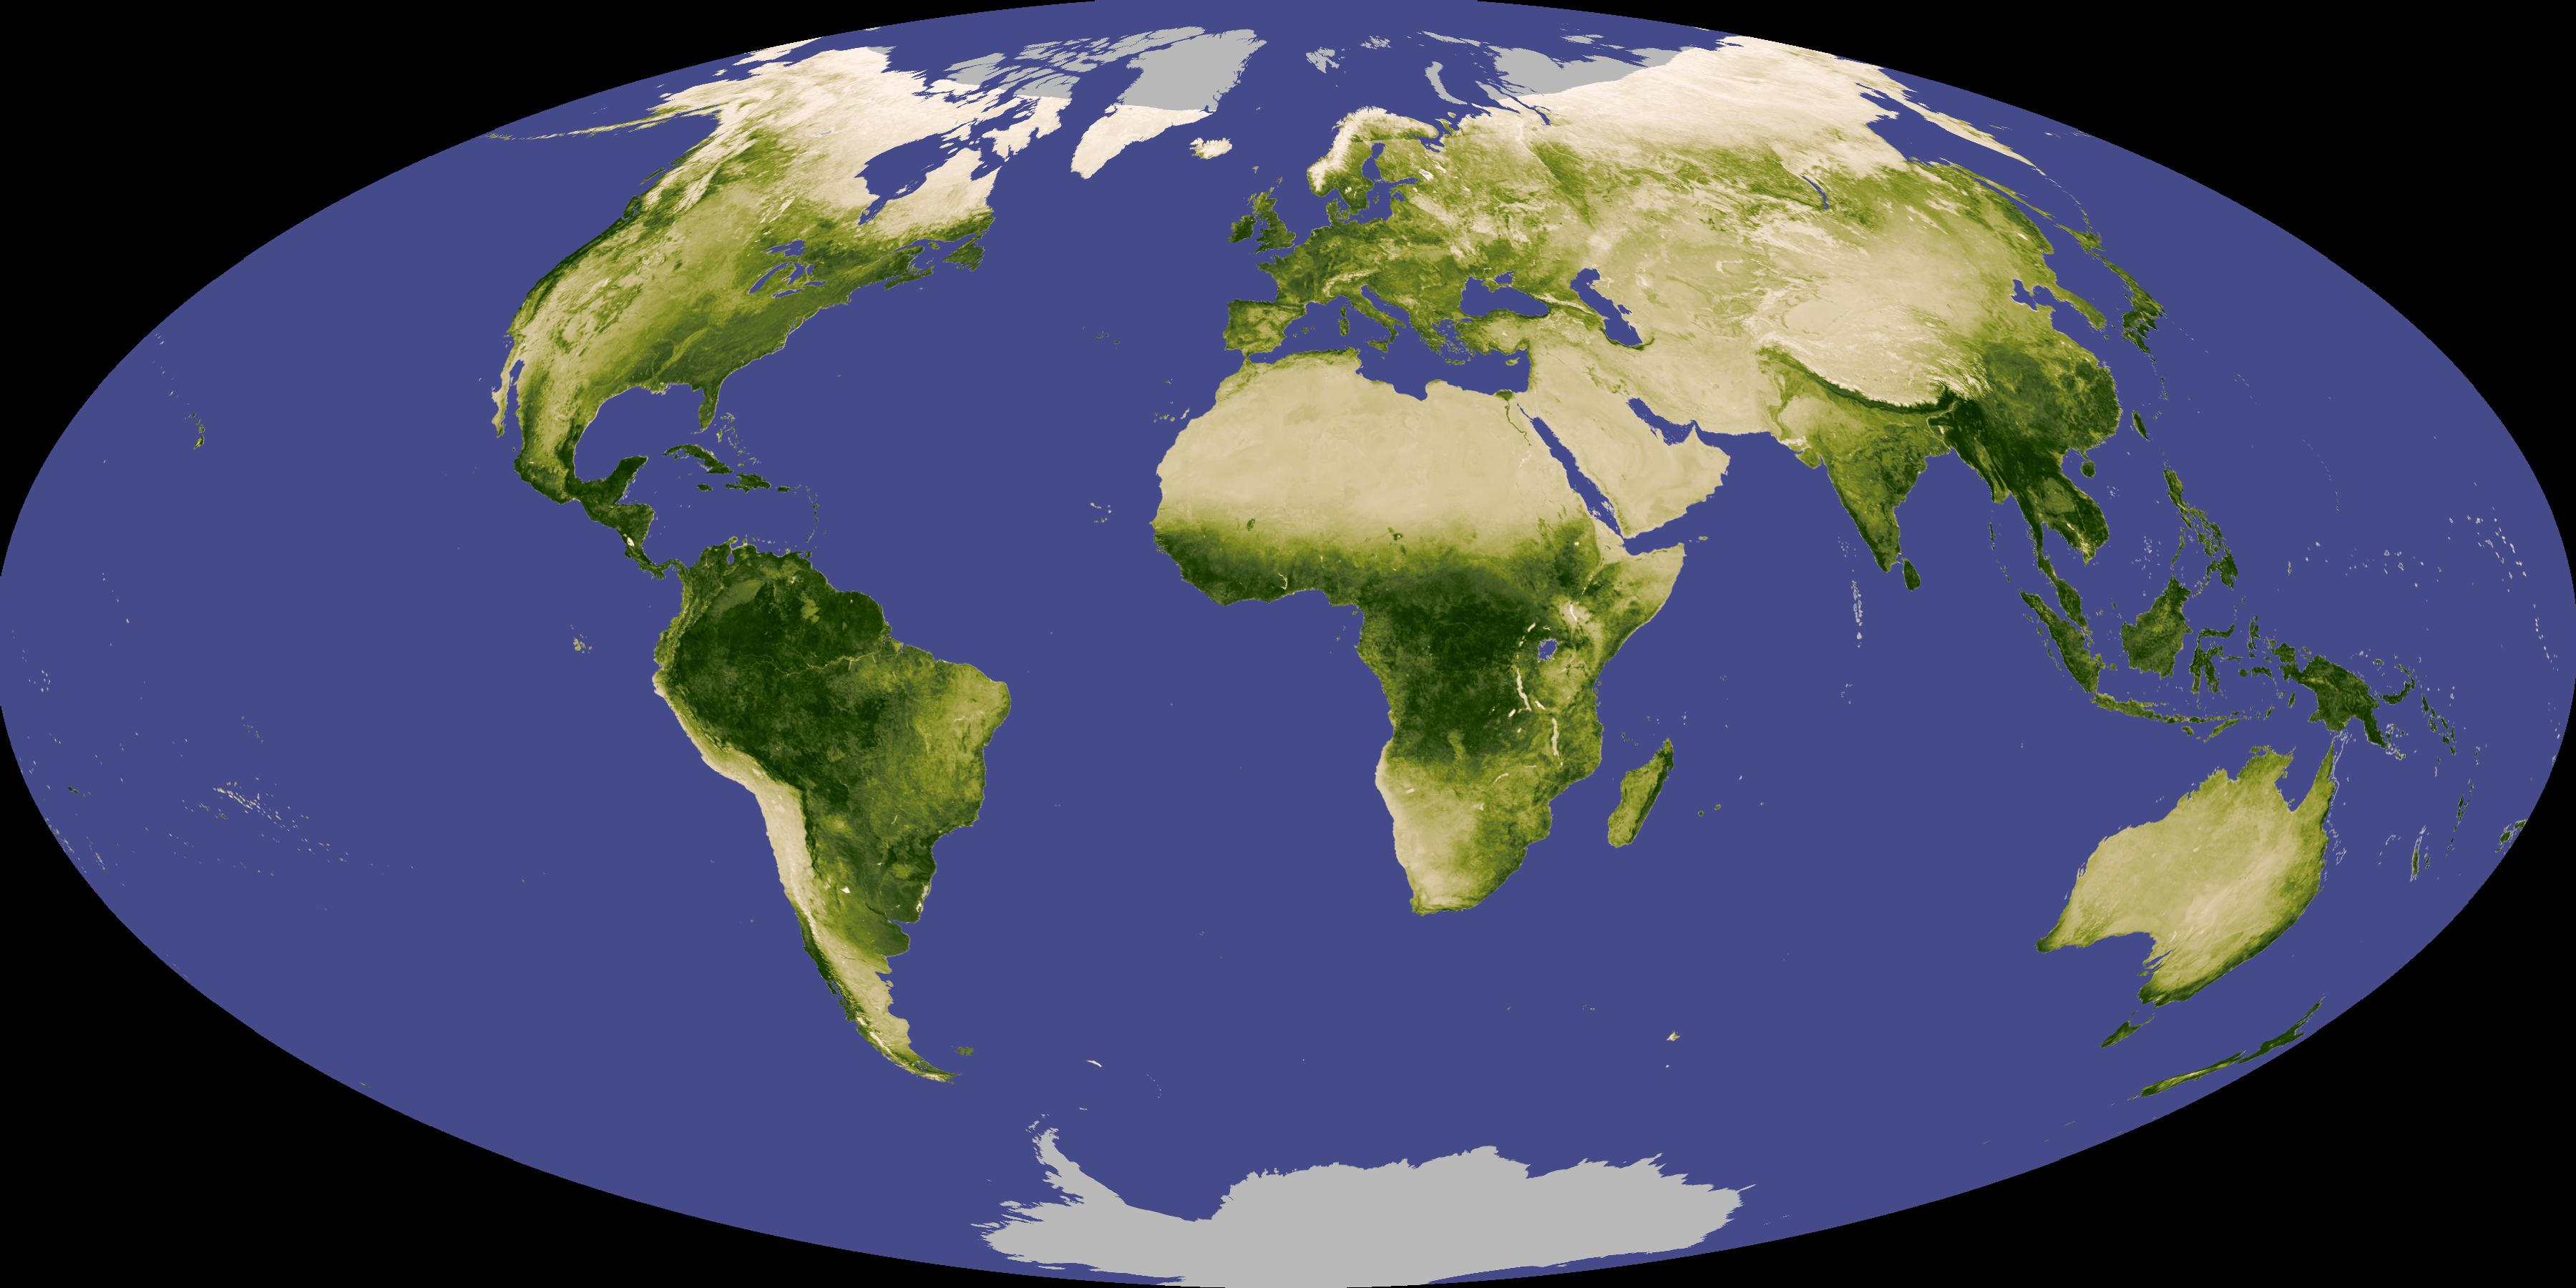 Satellites monitor how 'greenness' changes with Earth's seasons. Image source: NASA (via UCR) Image credit: None